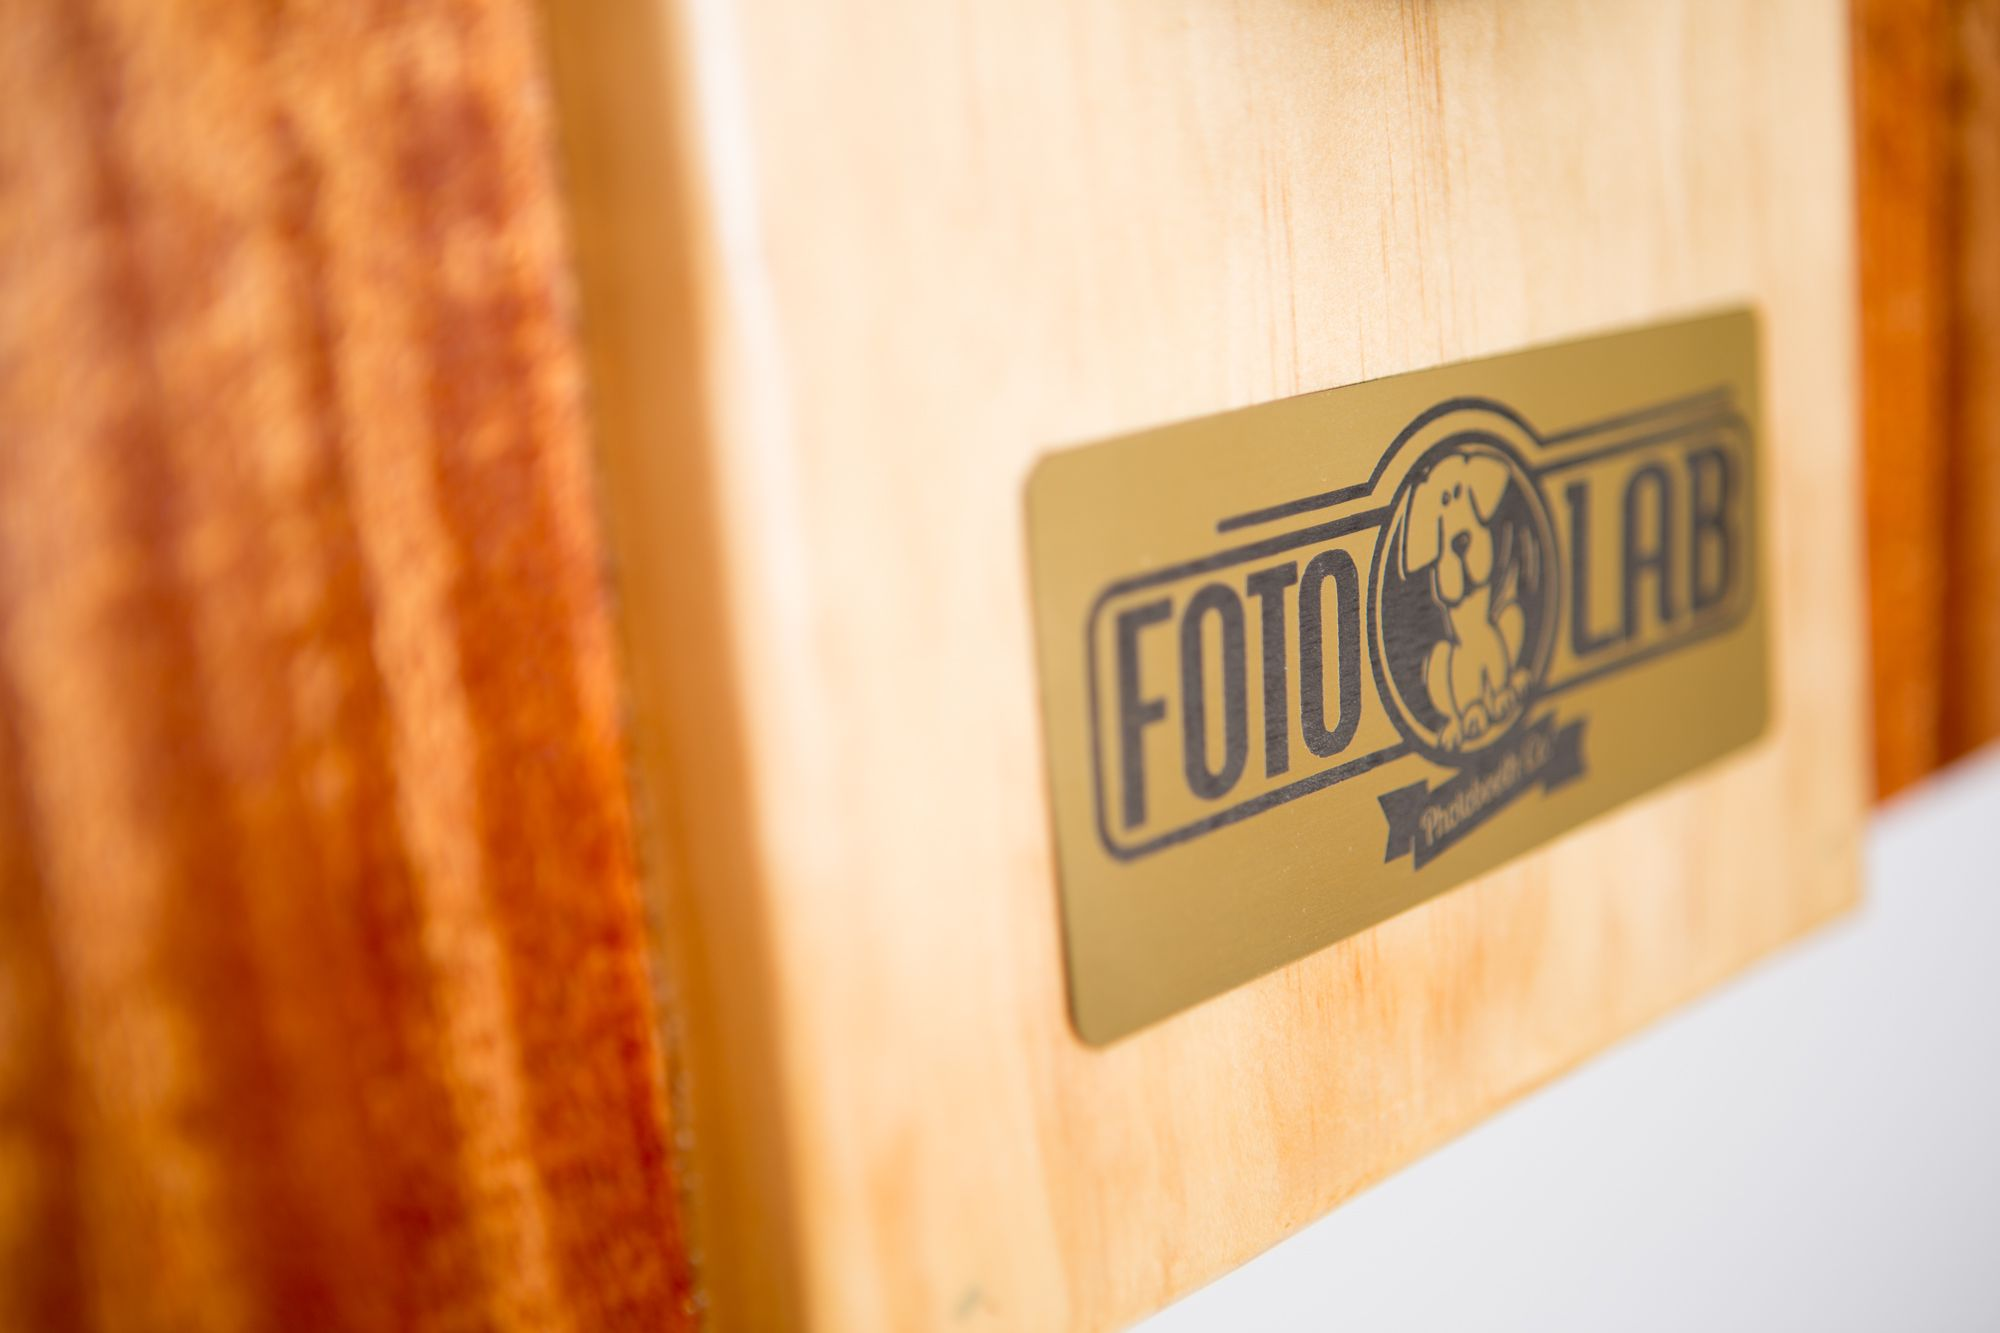 INTRODUCING FOTOLAB PHOTOBOOTH A PREMIER VINTAGE STYLED